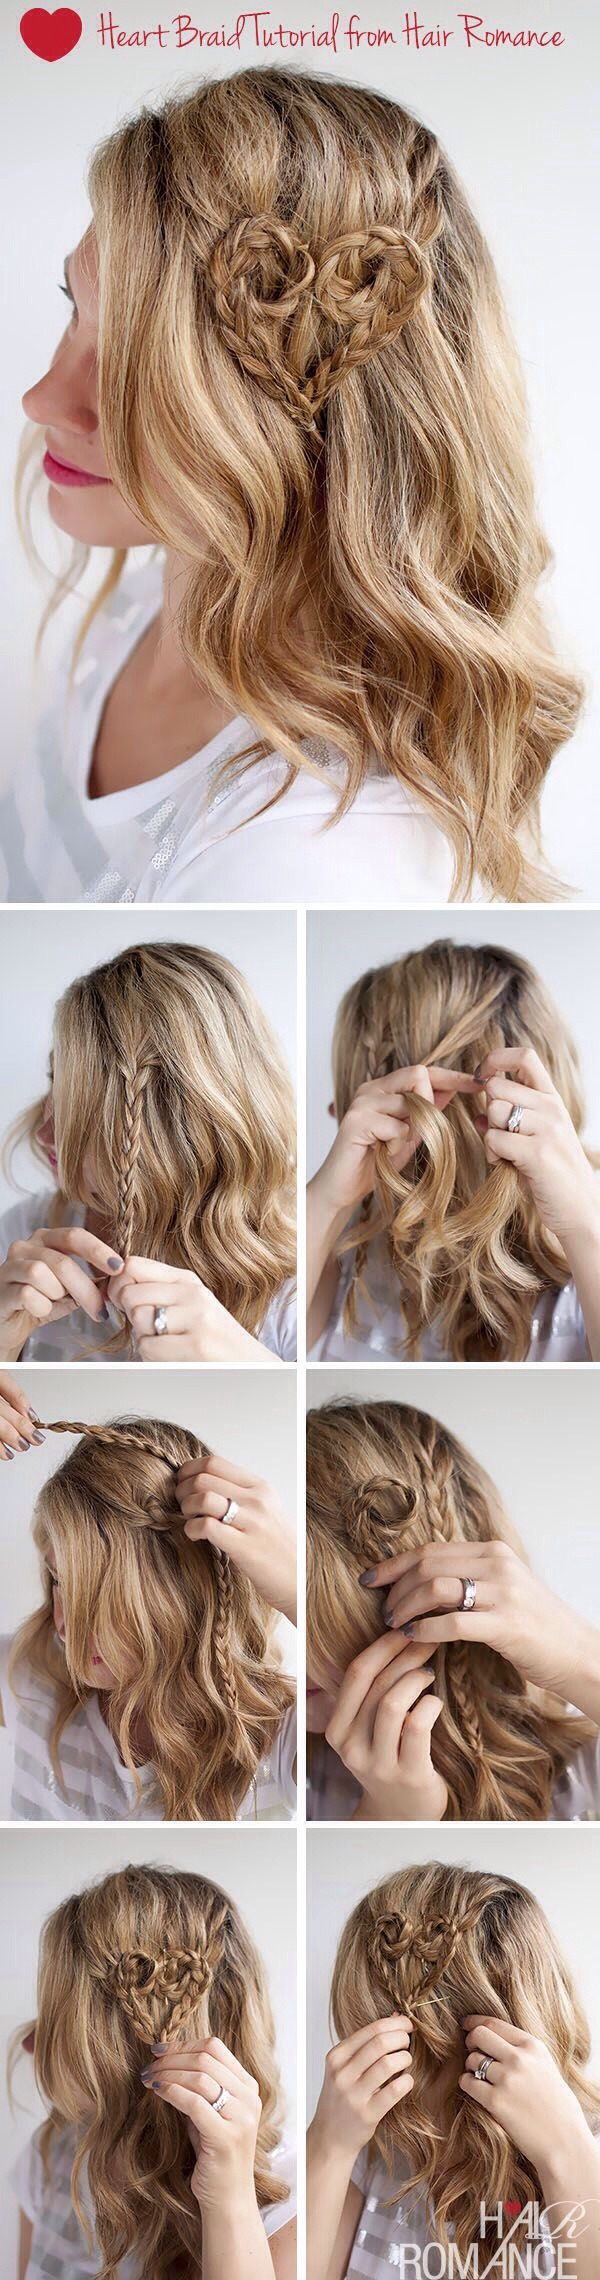 Heart Braided Hairstyle Tutorial